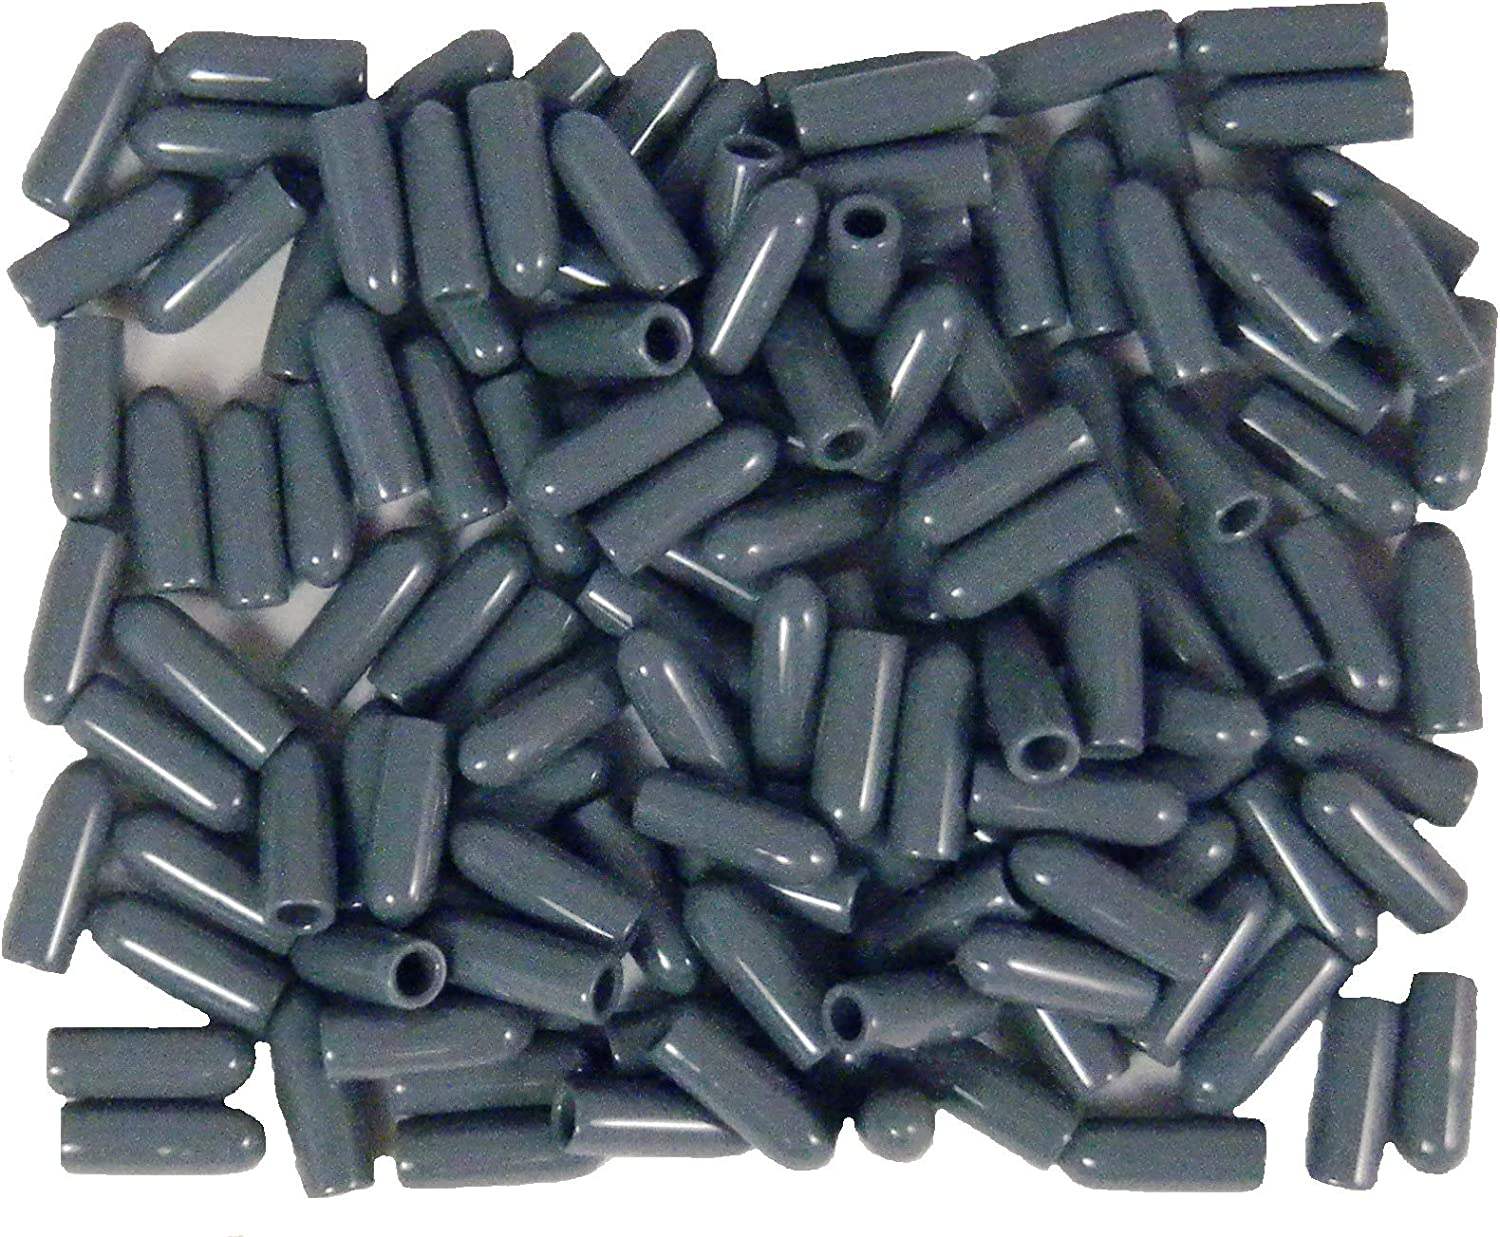 100 Universal Gray Grey Dishwasher Rack Tip Tine Cover Caps Just Push On to Repair